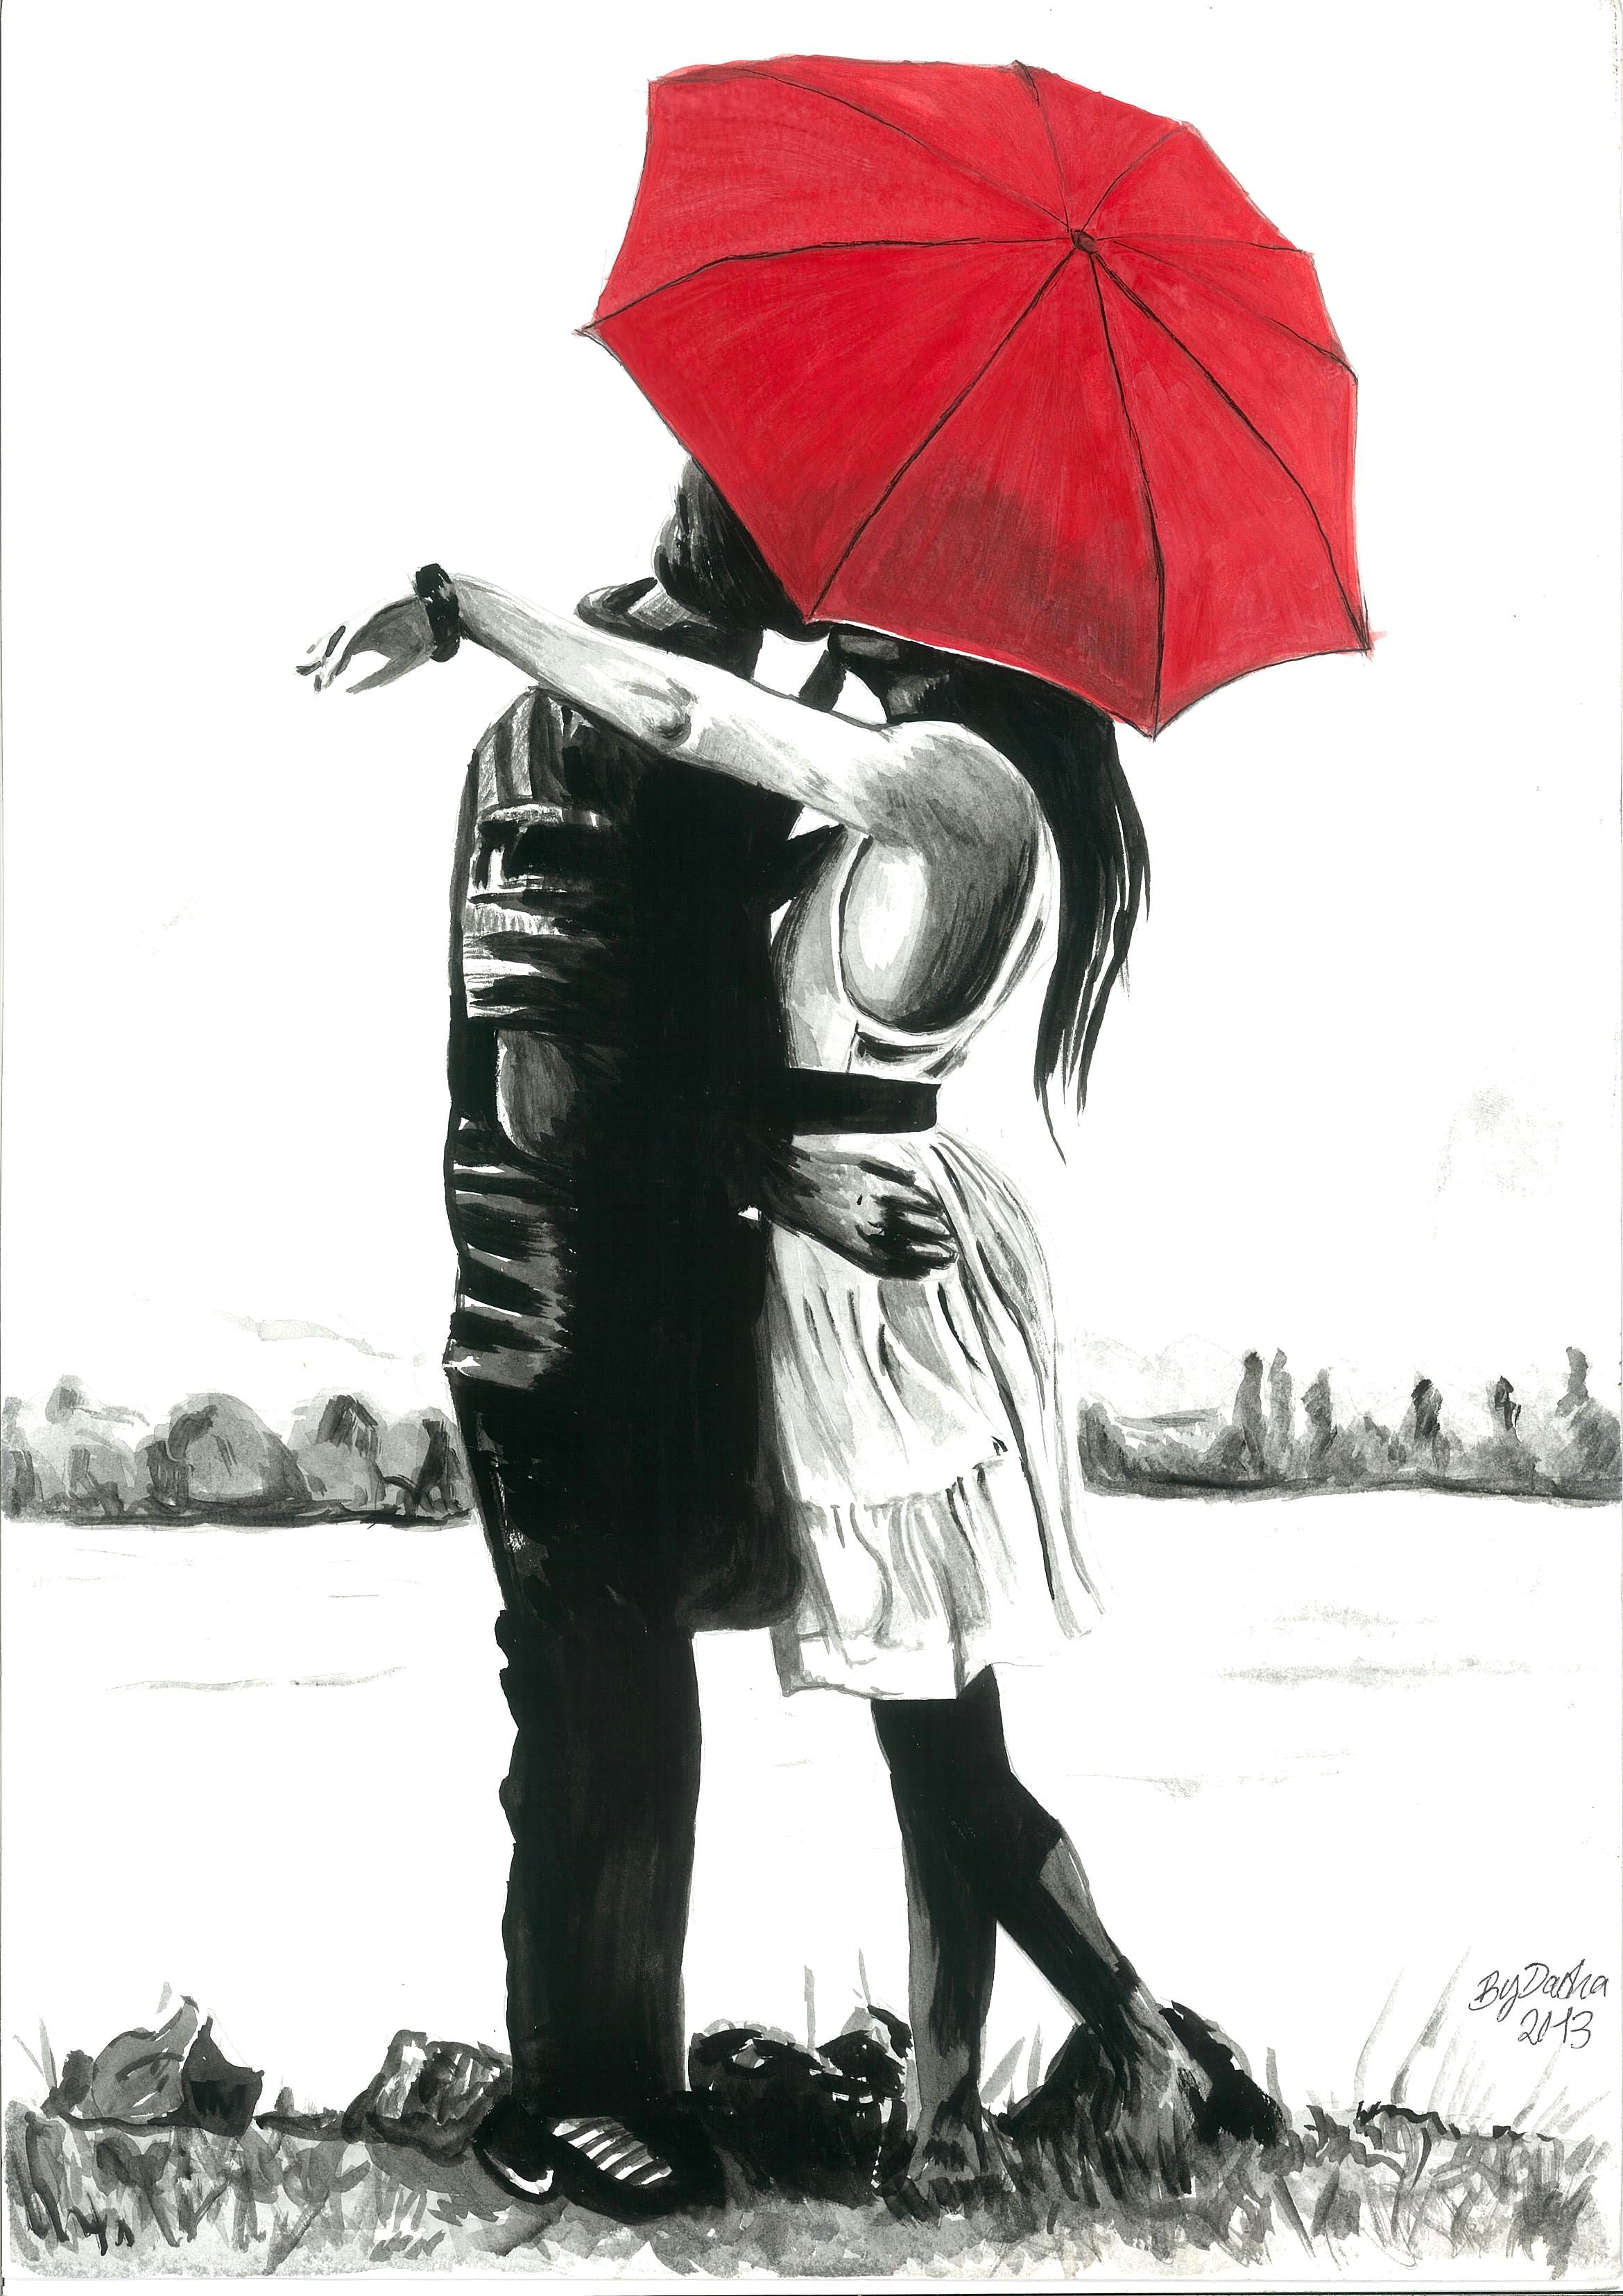 Acrylic painting of romance under the red umbrella black